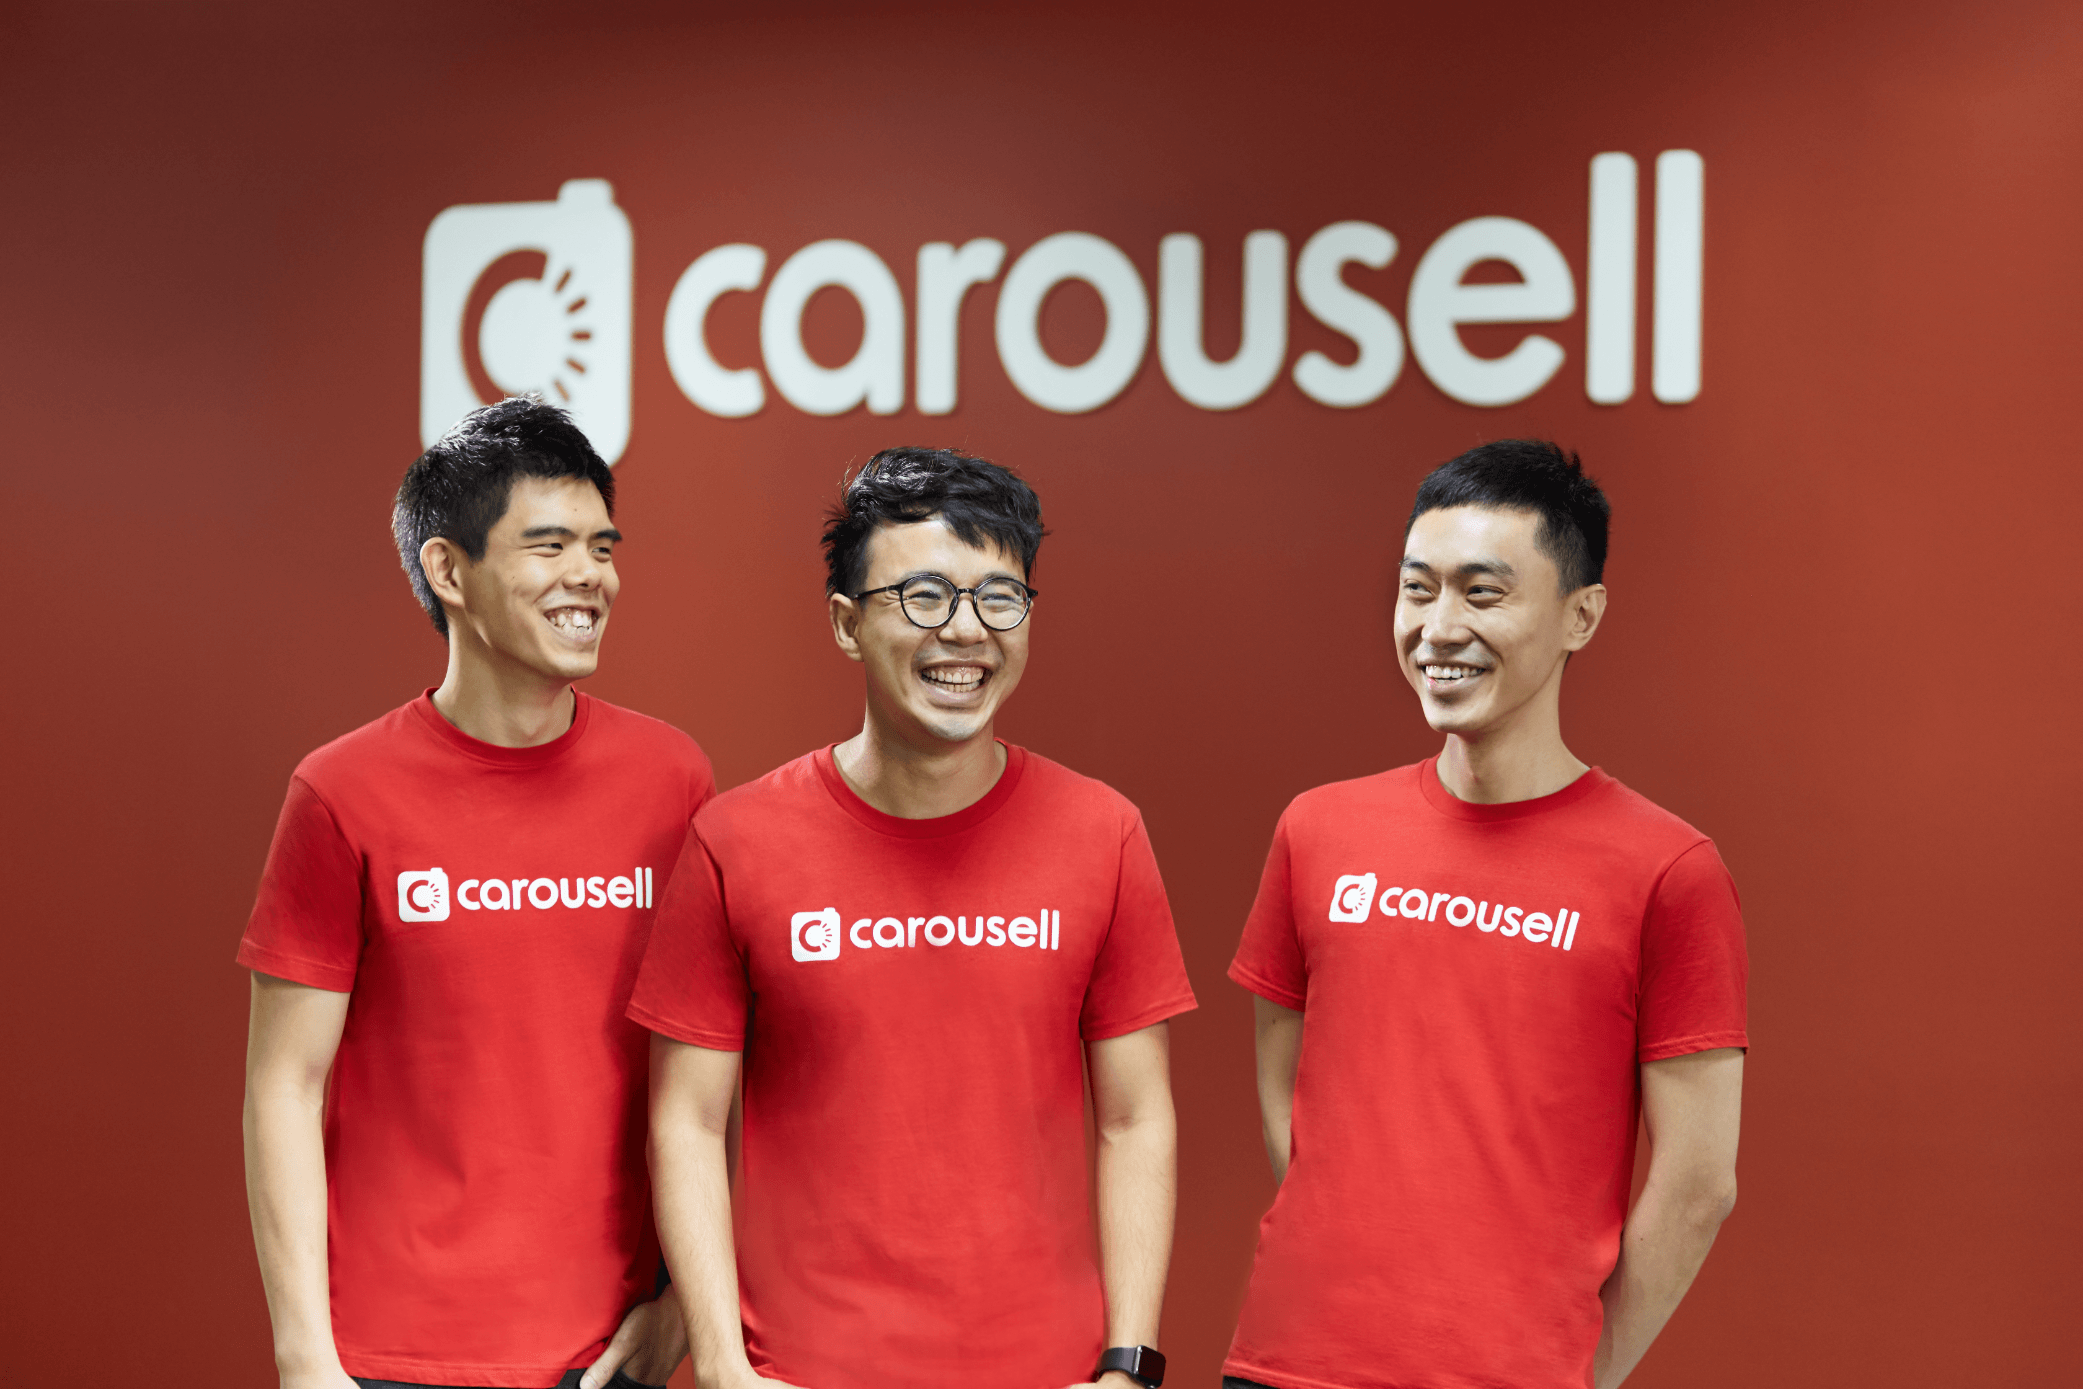 Carousell ties up with Supahands to enhance its search function